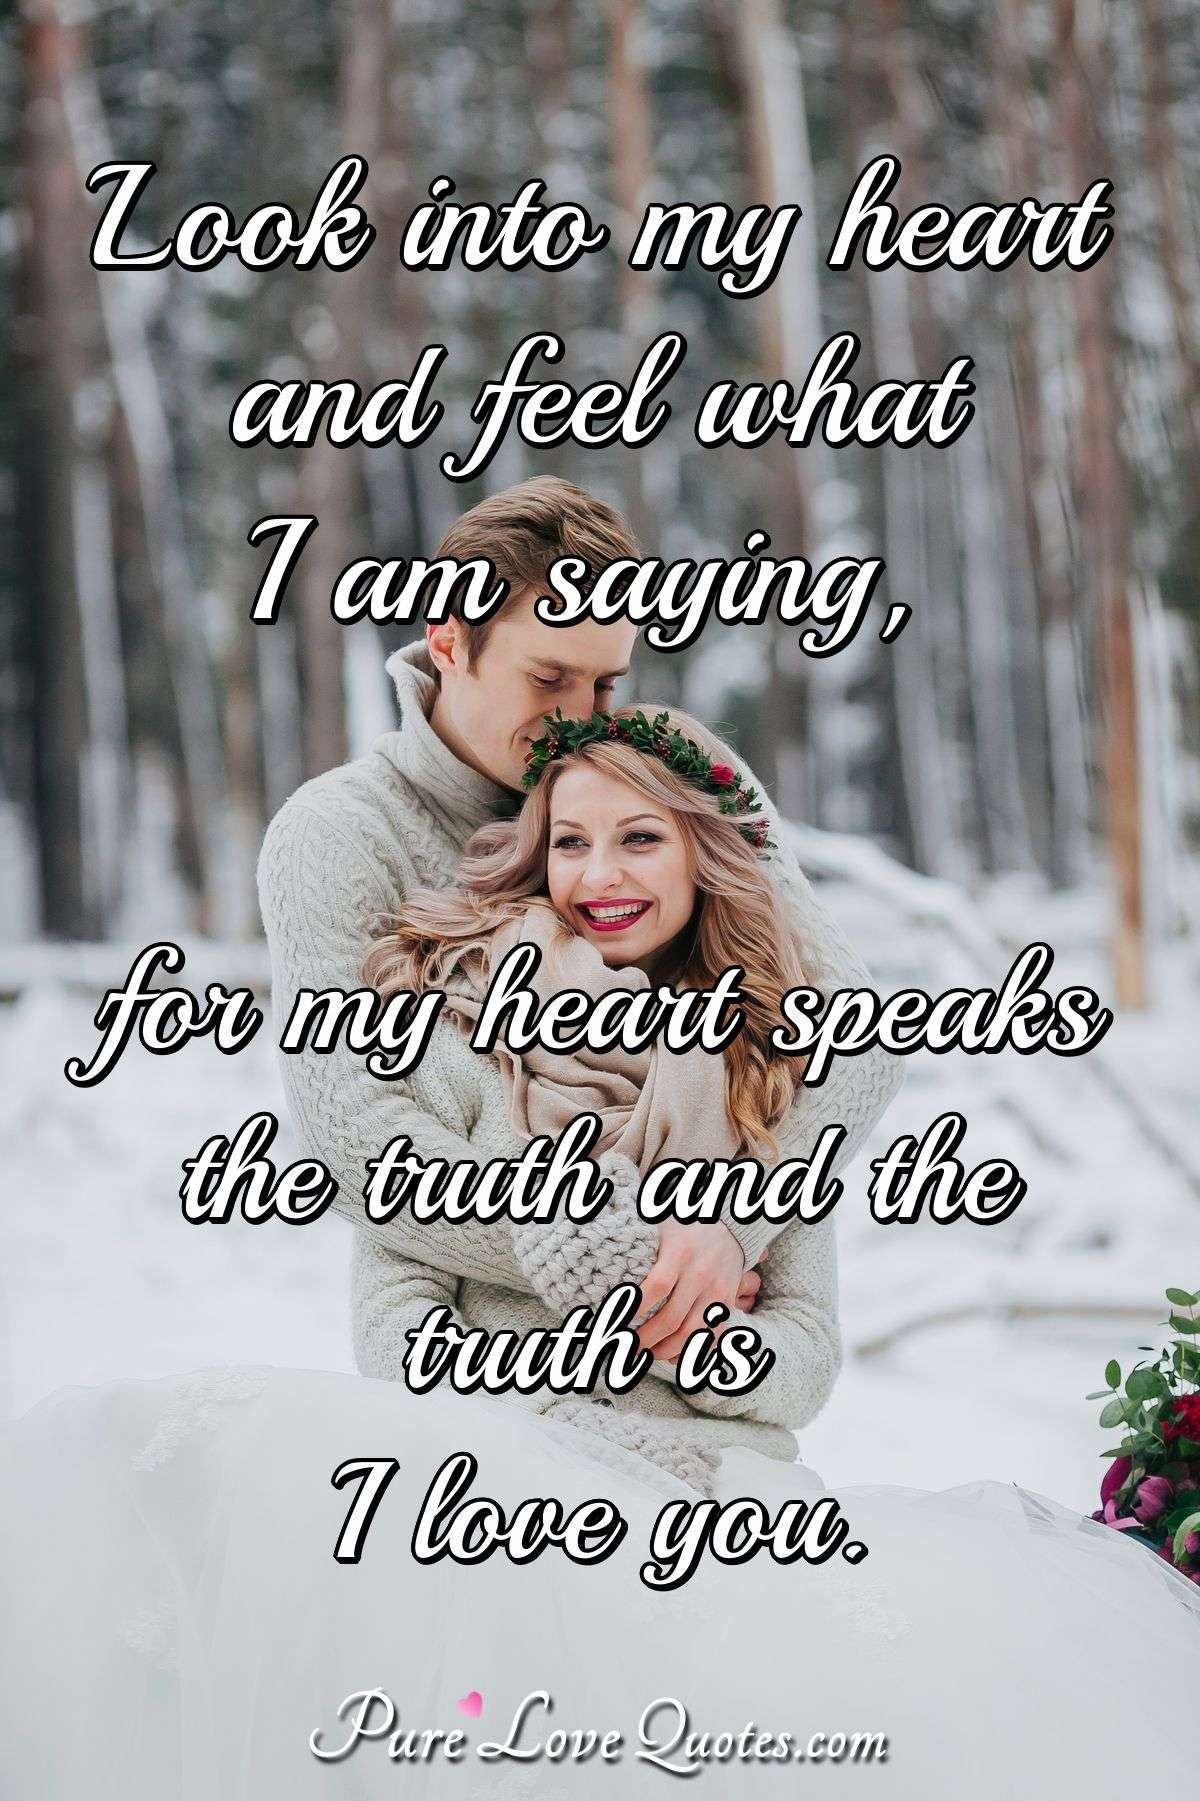 Look into my heart and feel what I am saying, for my heart speaks the truth and the truth is I love you. - Anonymous